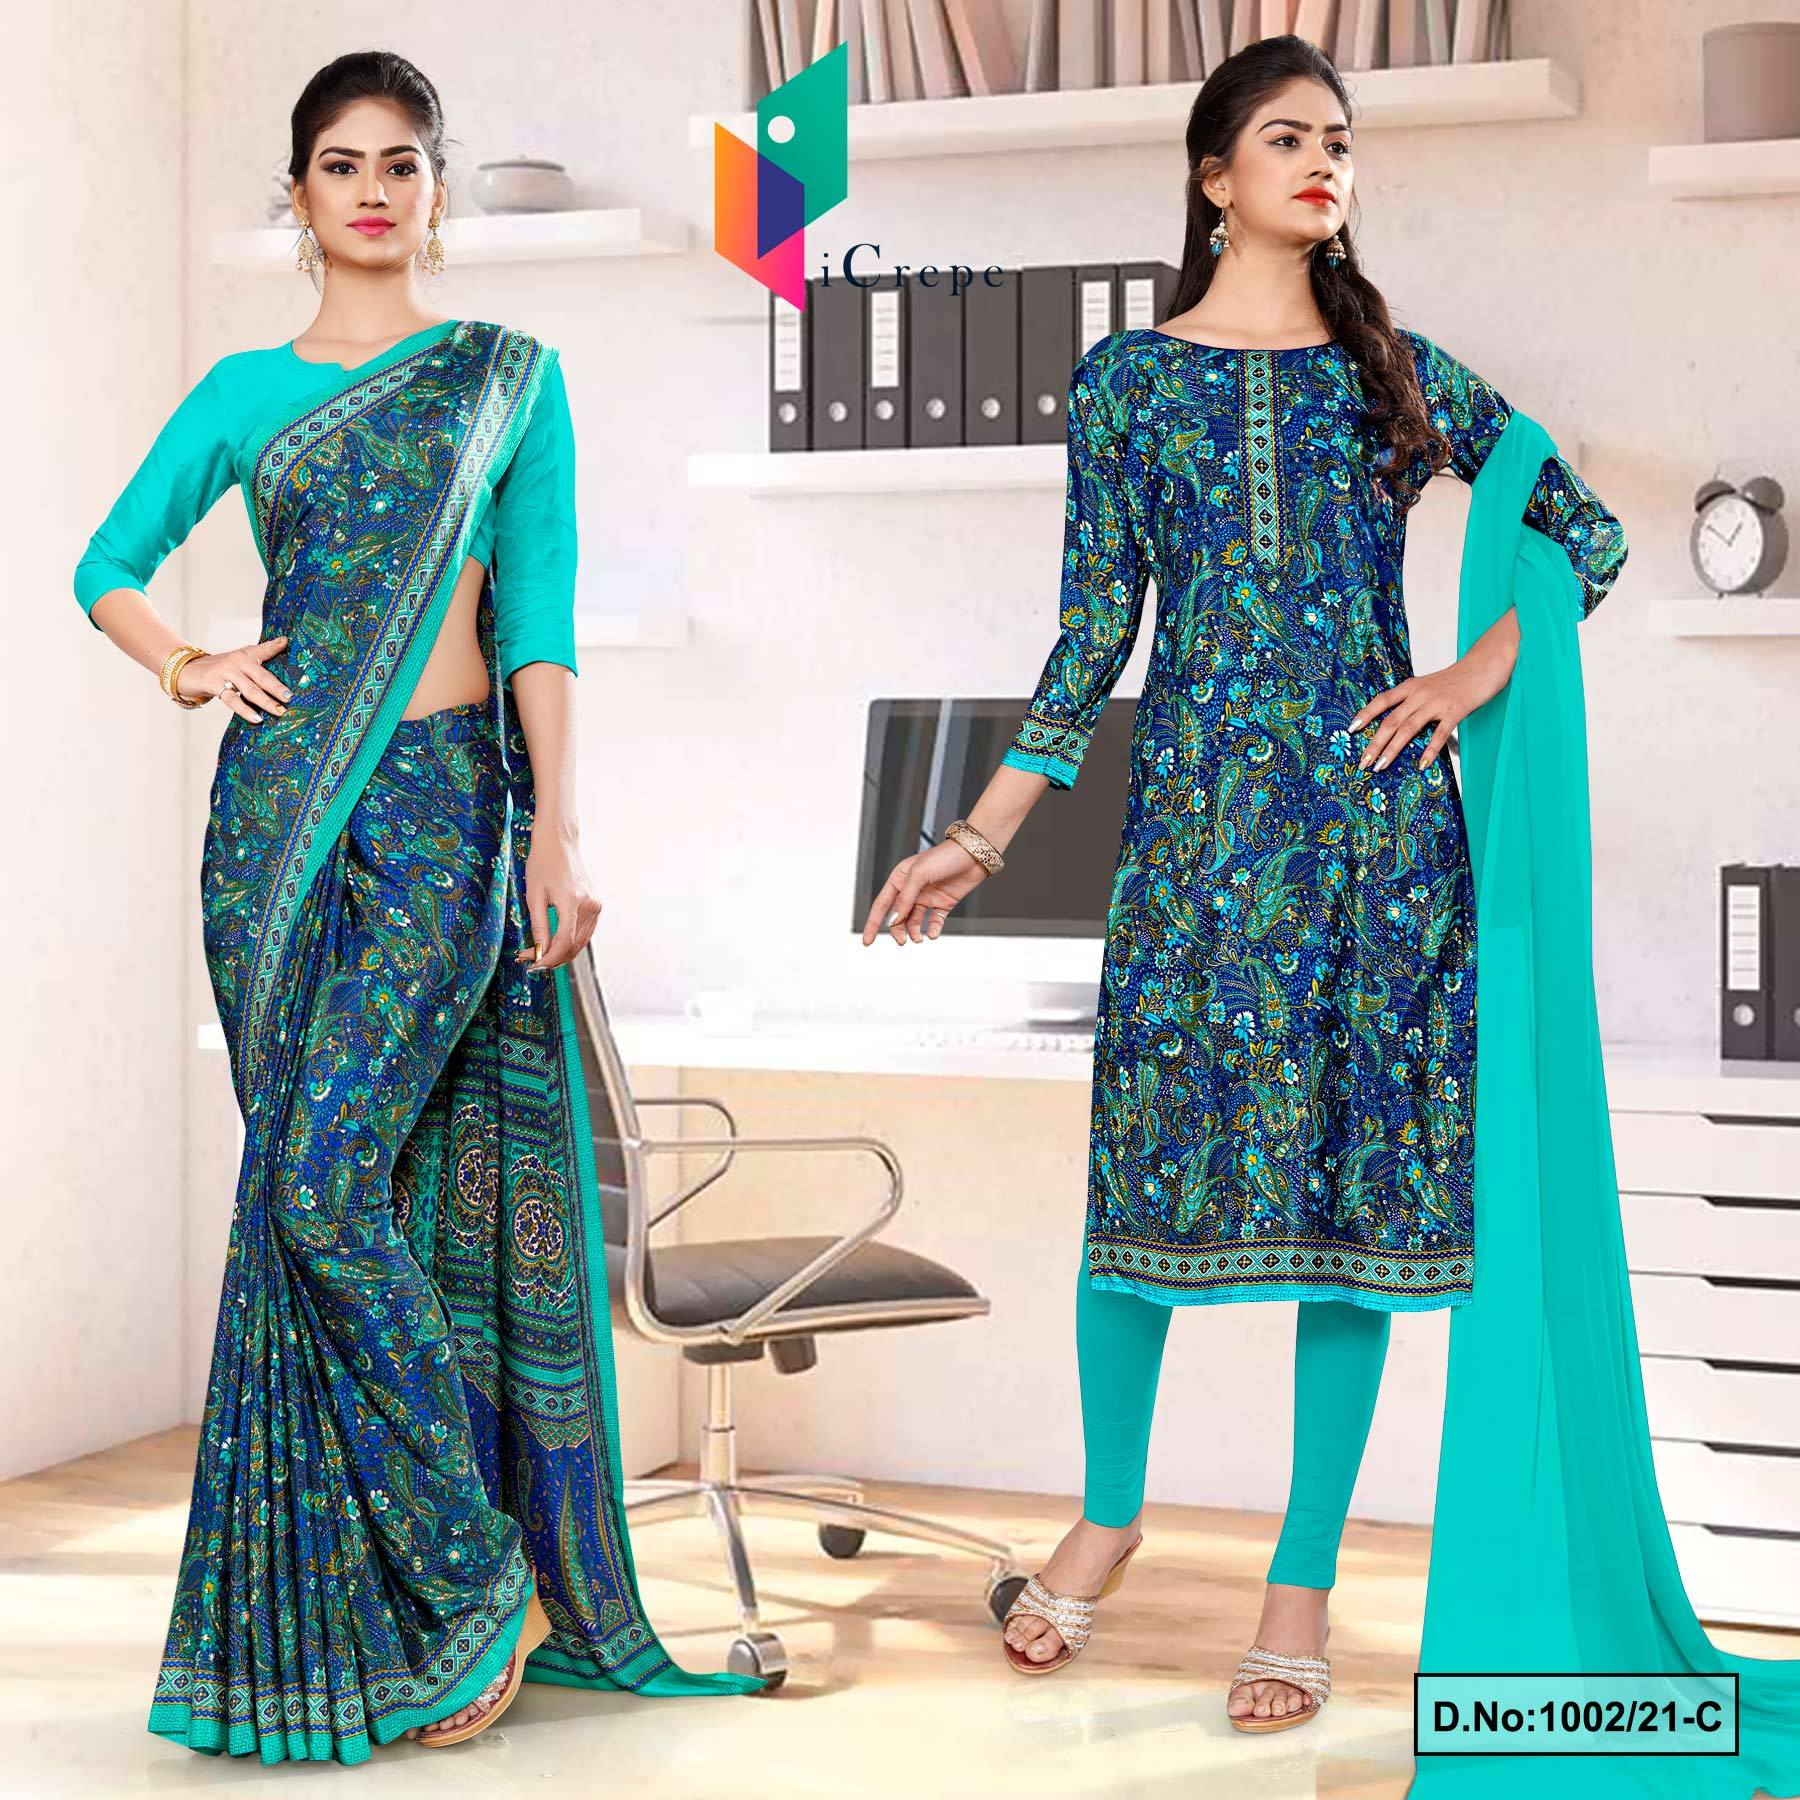 Blue Green Premium Paisley Print Italian Crepe Saree Salwar Combo for Teachers Uniform Sarees